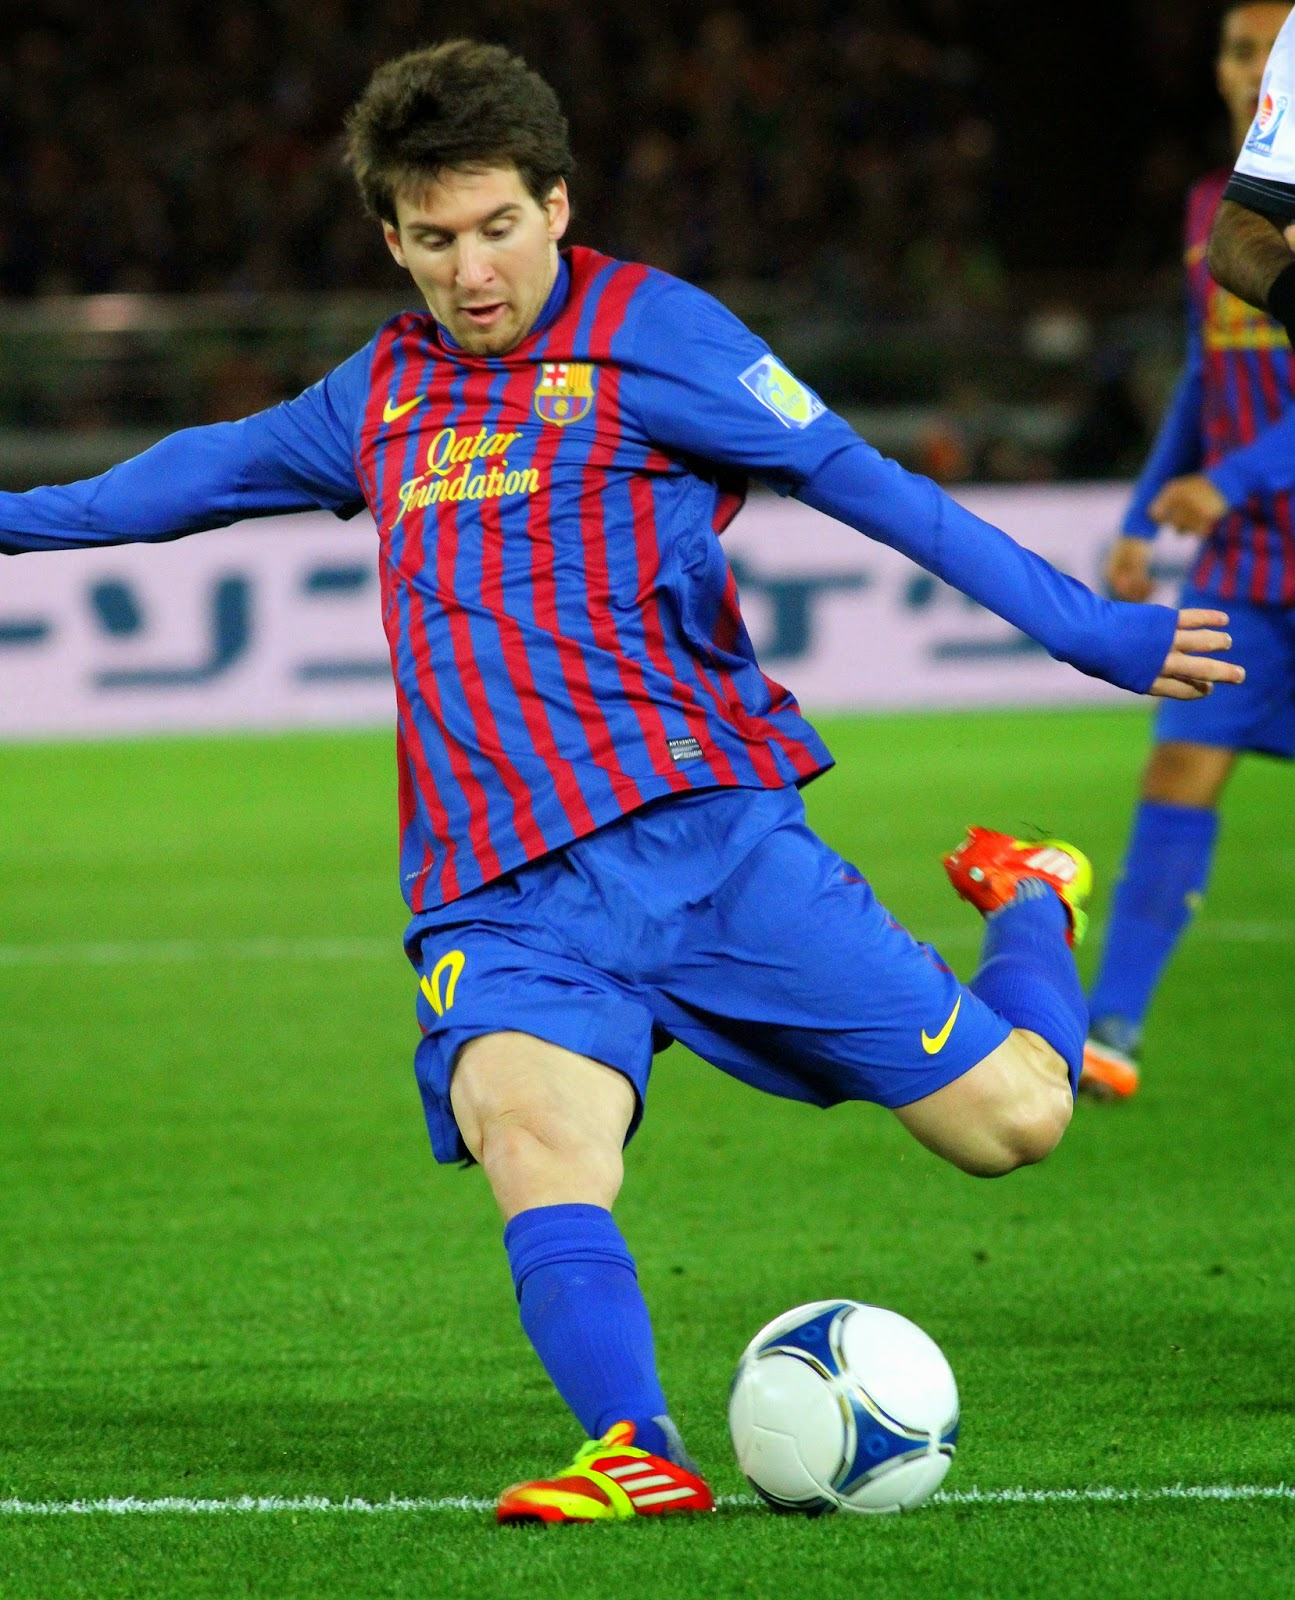 Lionel Messi Full HD Wallpapers 2016 | Encarles Wallpaper